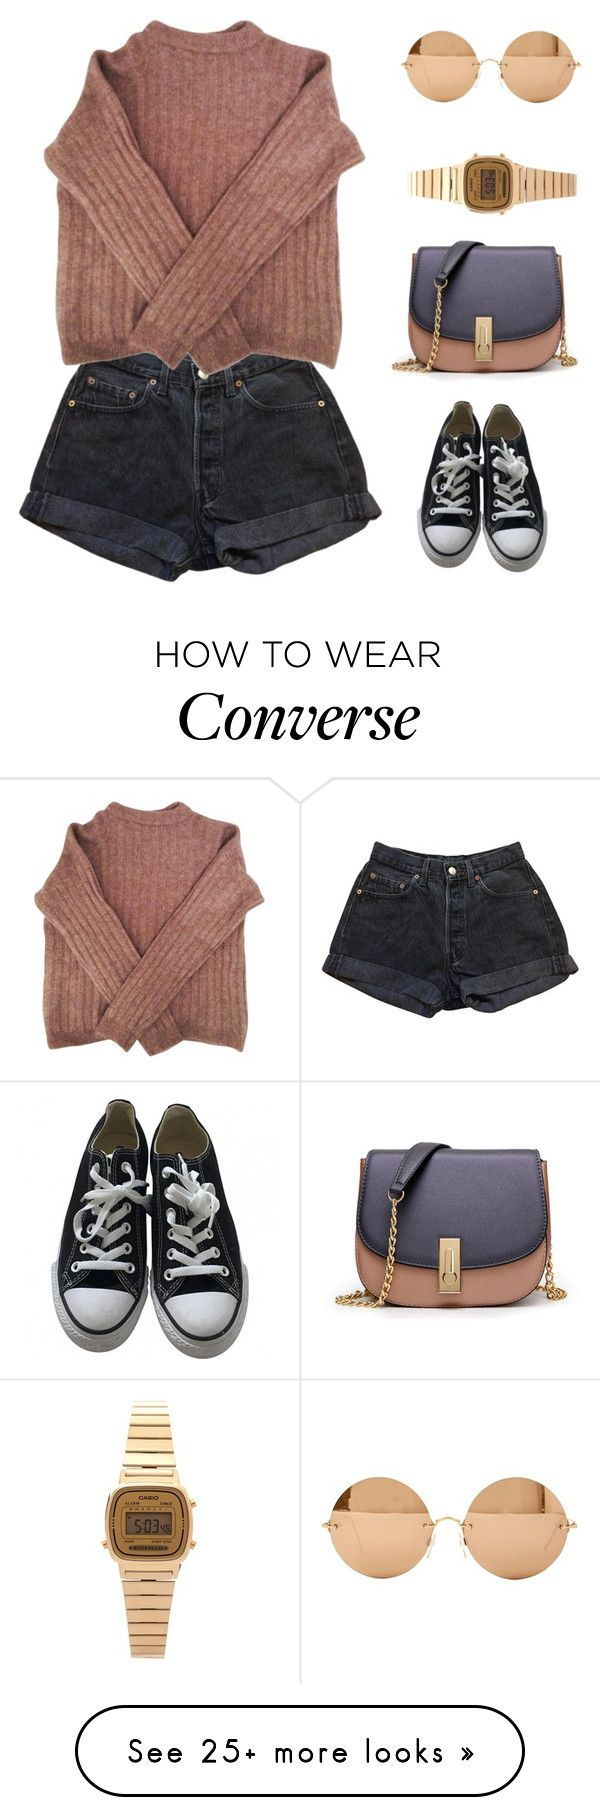 """""""Your Time Is Running Out"""" by mariposa-fashion-21 on Polyvore featuring Levi's, Converse, Victoria Beckham, Acne Studios, WithChic and Casio"""